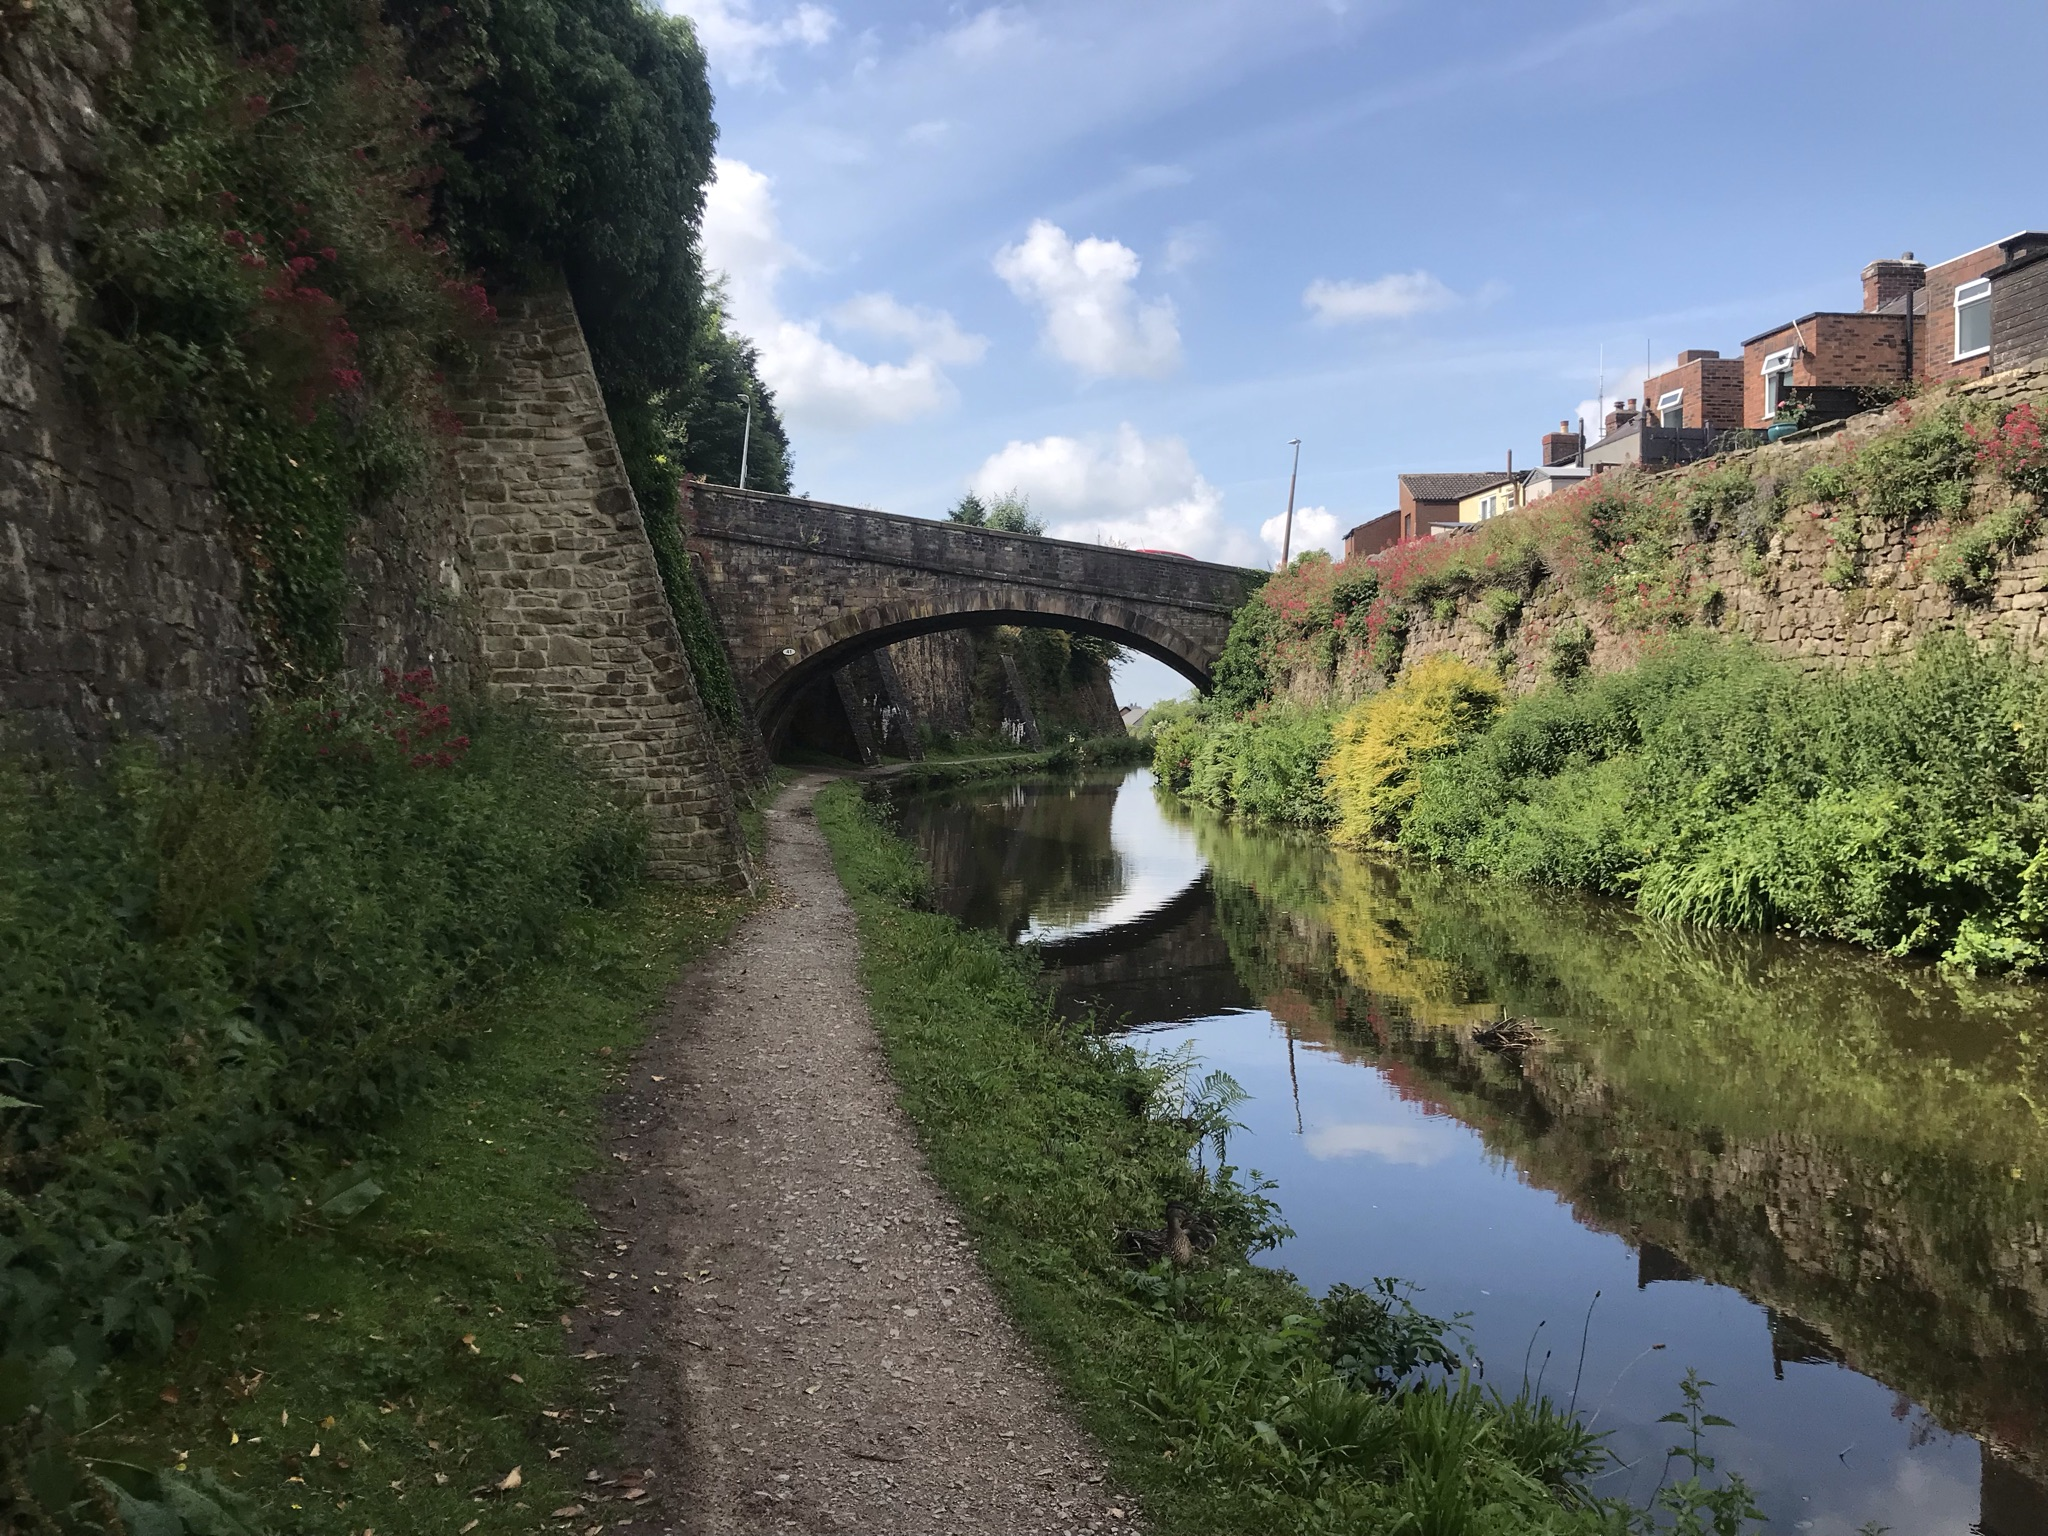 A towpath along the canal with high, flower covered stone walls either side. The canal is still and reflecting the walls and the sky